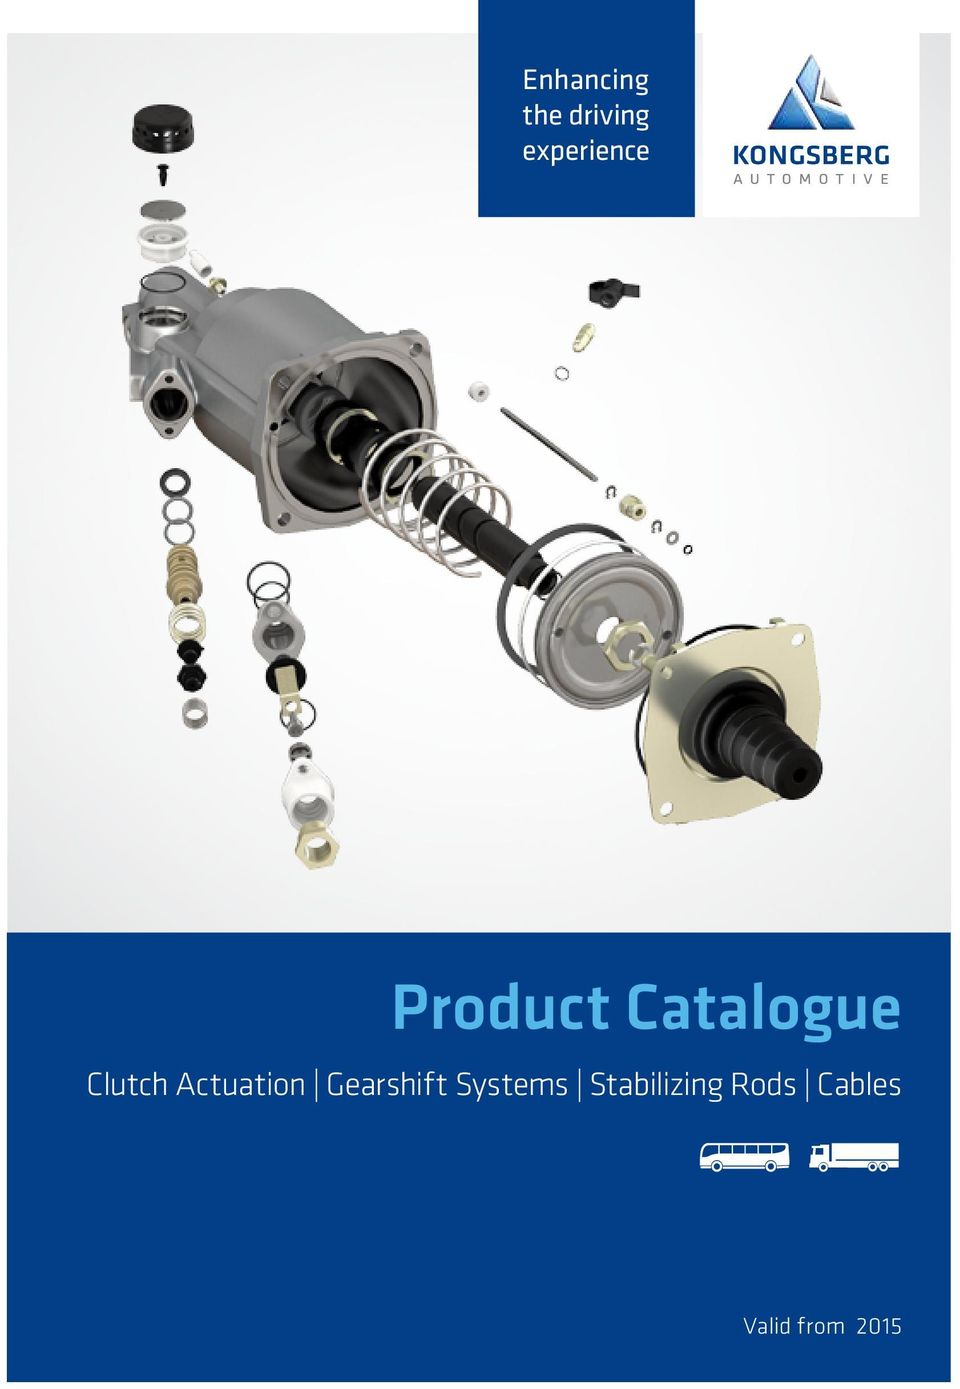 Clutch Actuation Gearshift